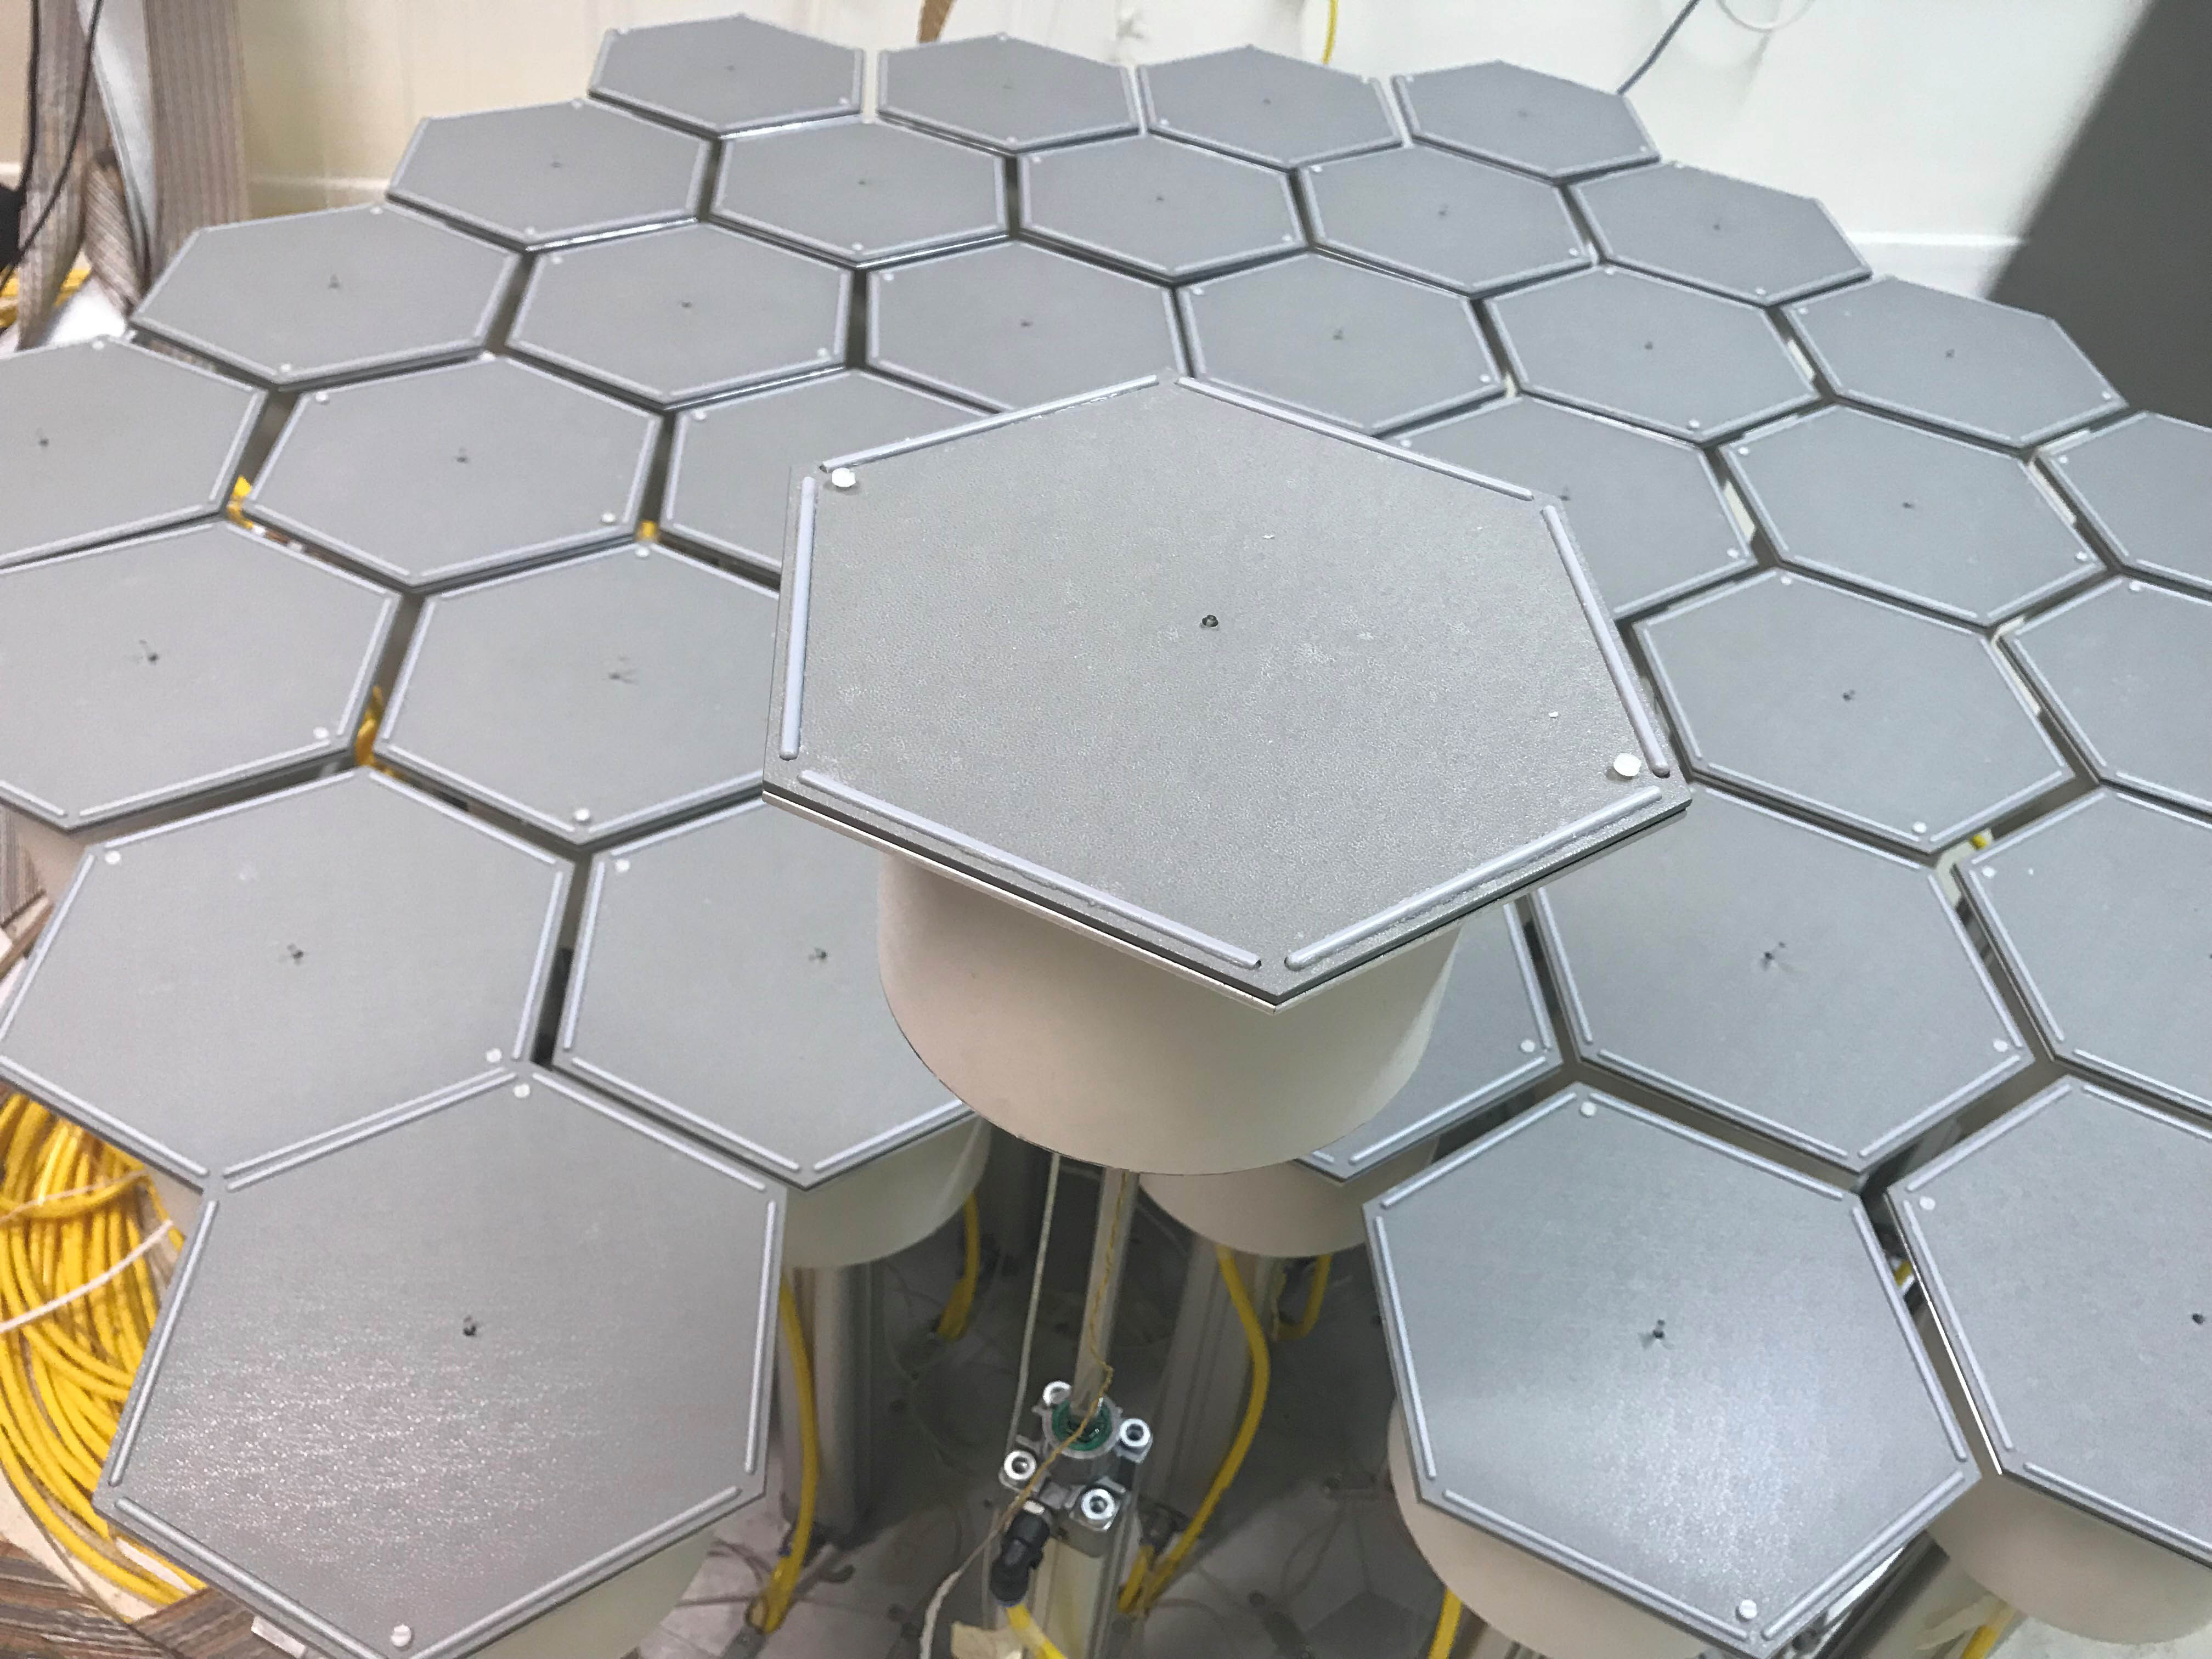 Honeycomb maze raised platform